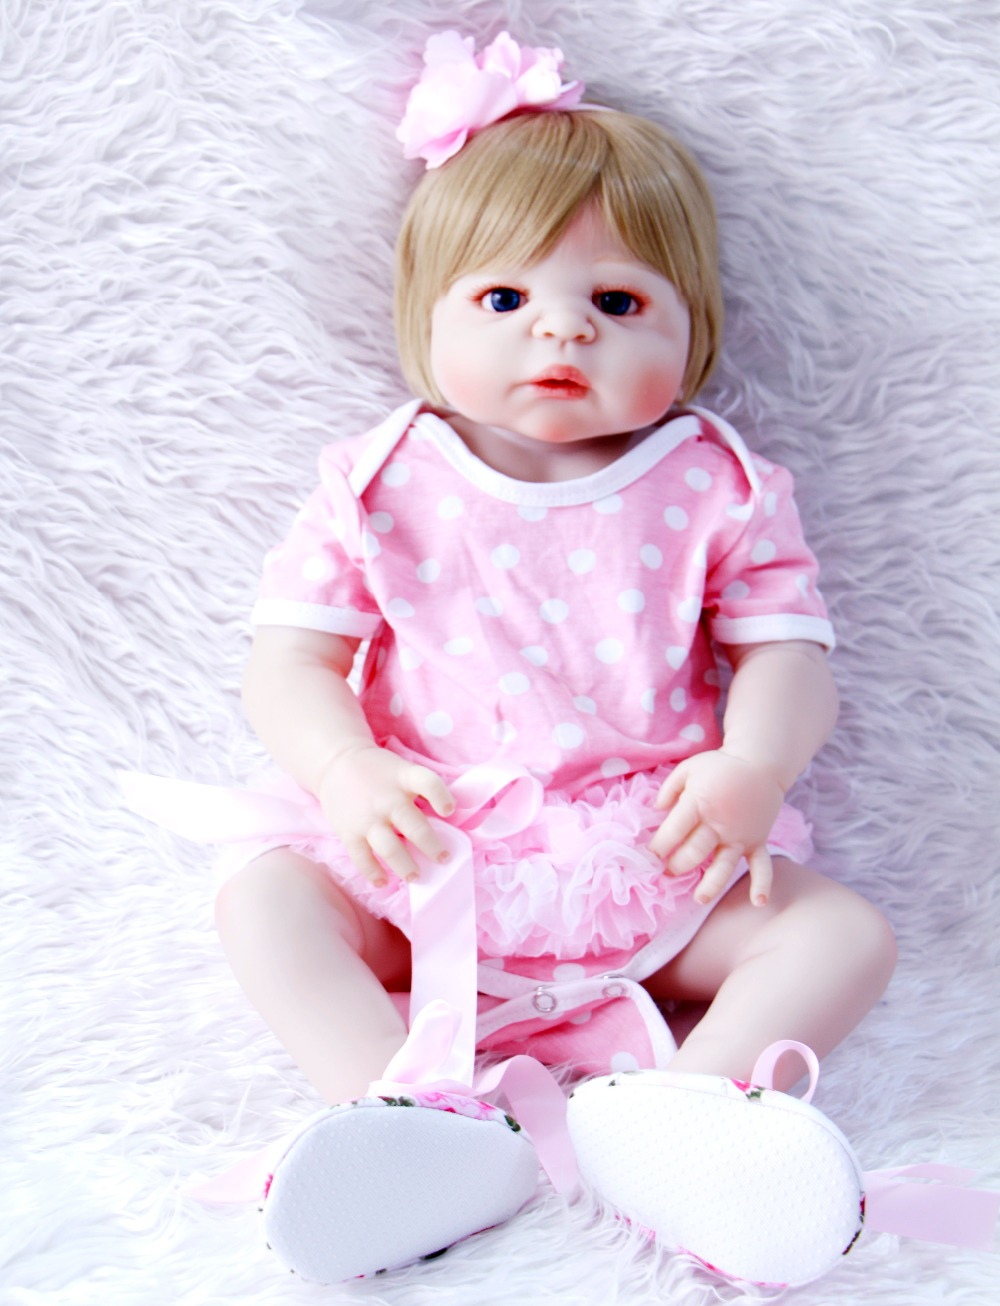 23 Full Silicone Body Reborn babies newborn princess wear pink girl dress handmade adorable toddler dolls kids birthday gifts23 Full Silicone Body Reborn babies newborn princess wear pink girl dress handmade adorable toddler dolls kids birthday gifts